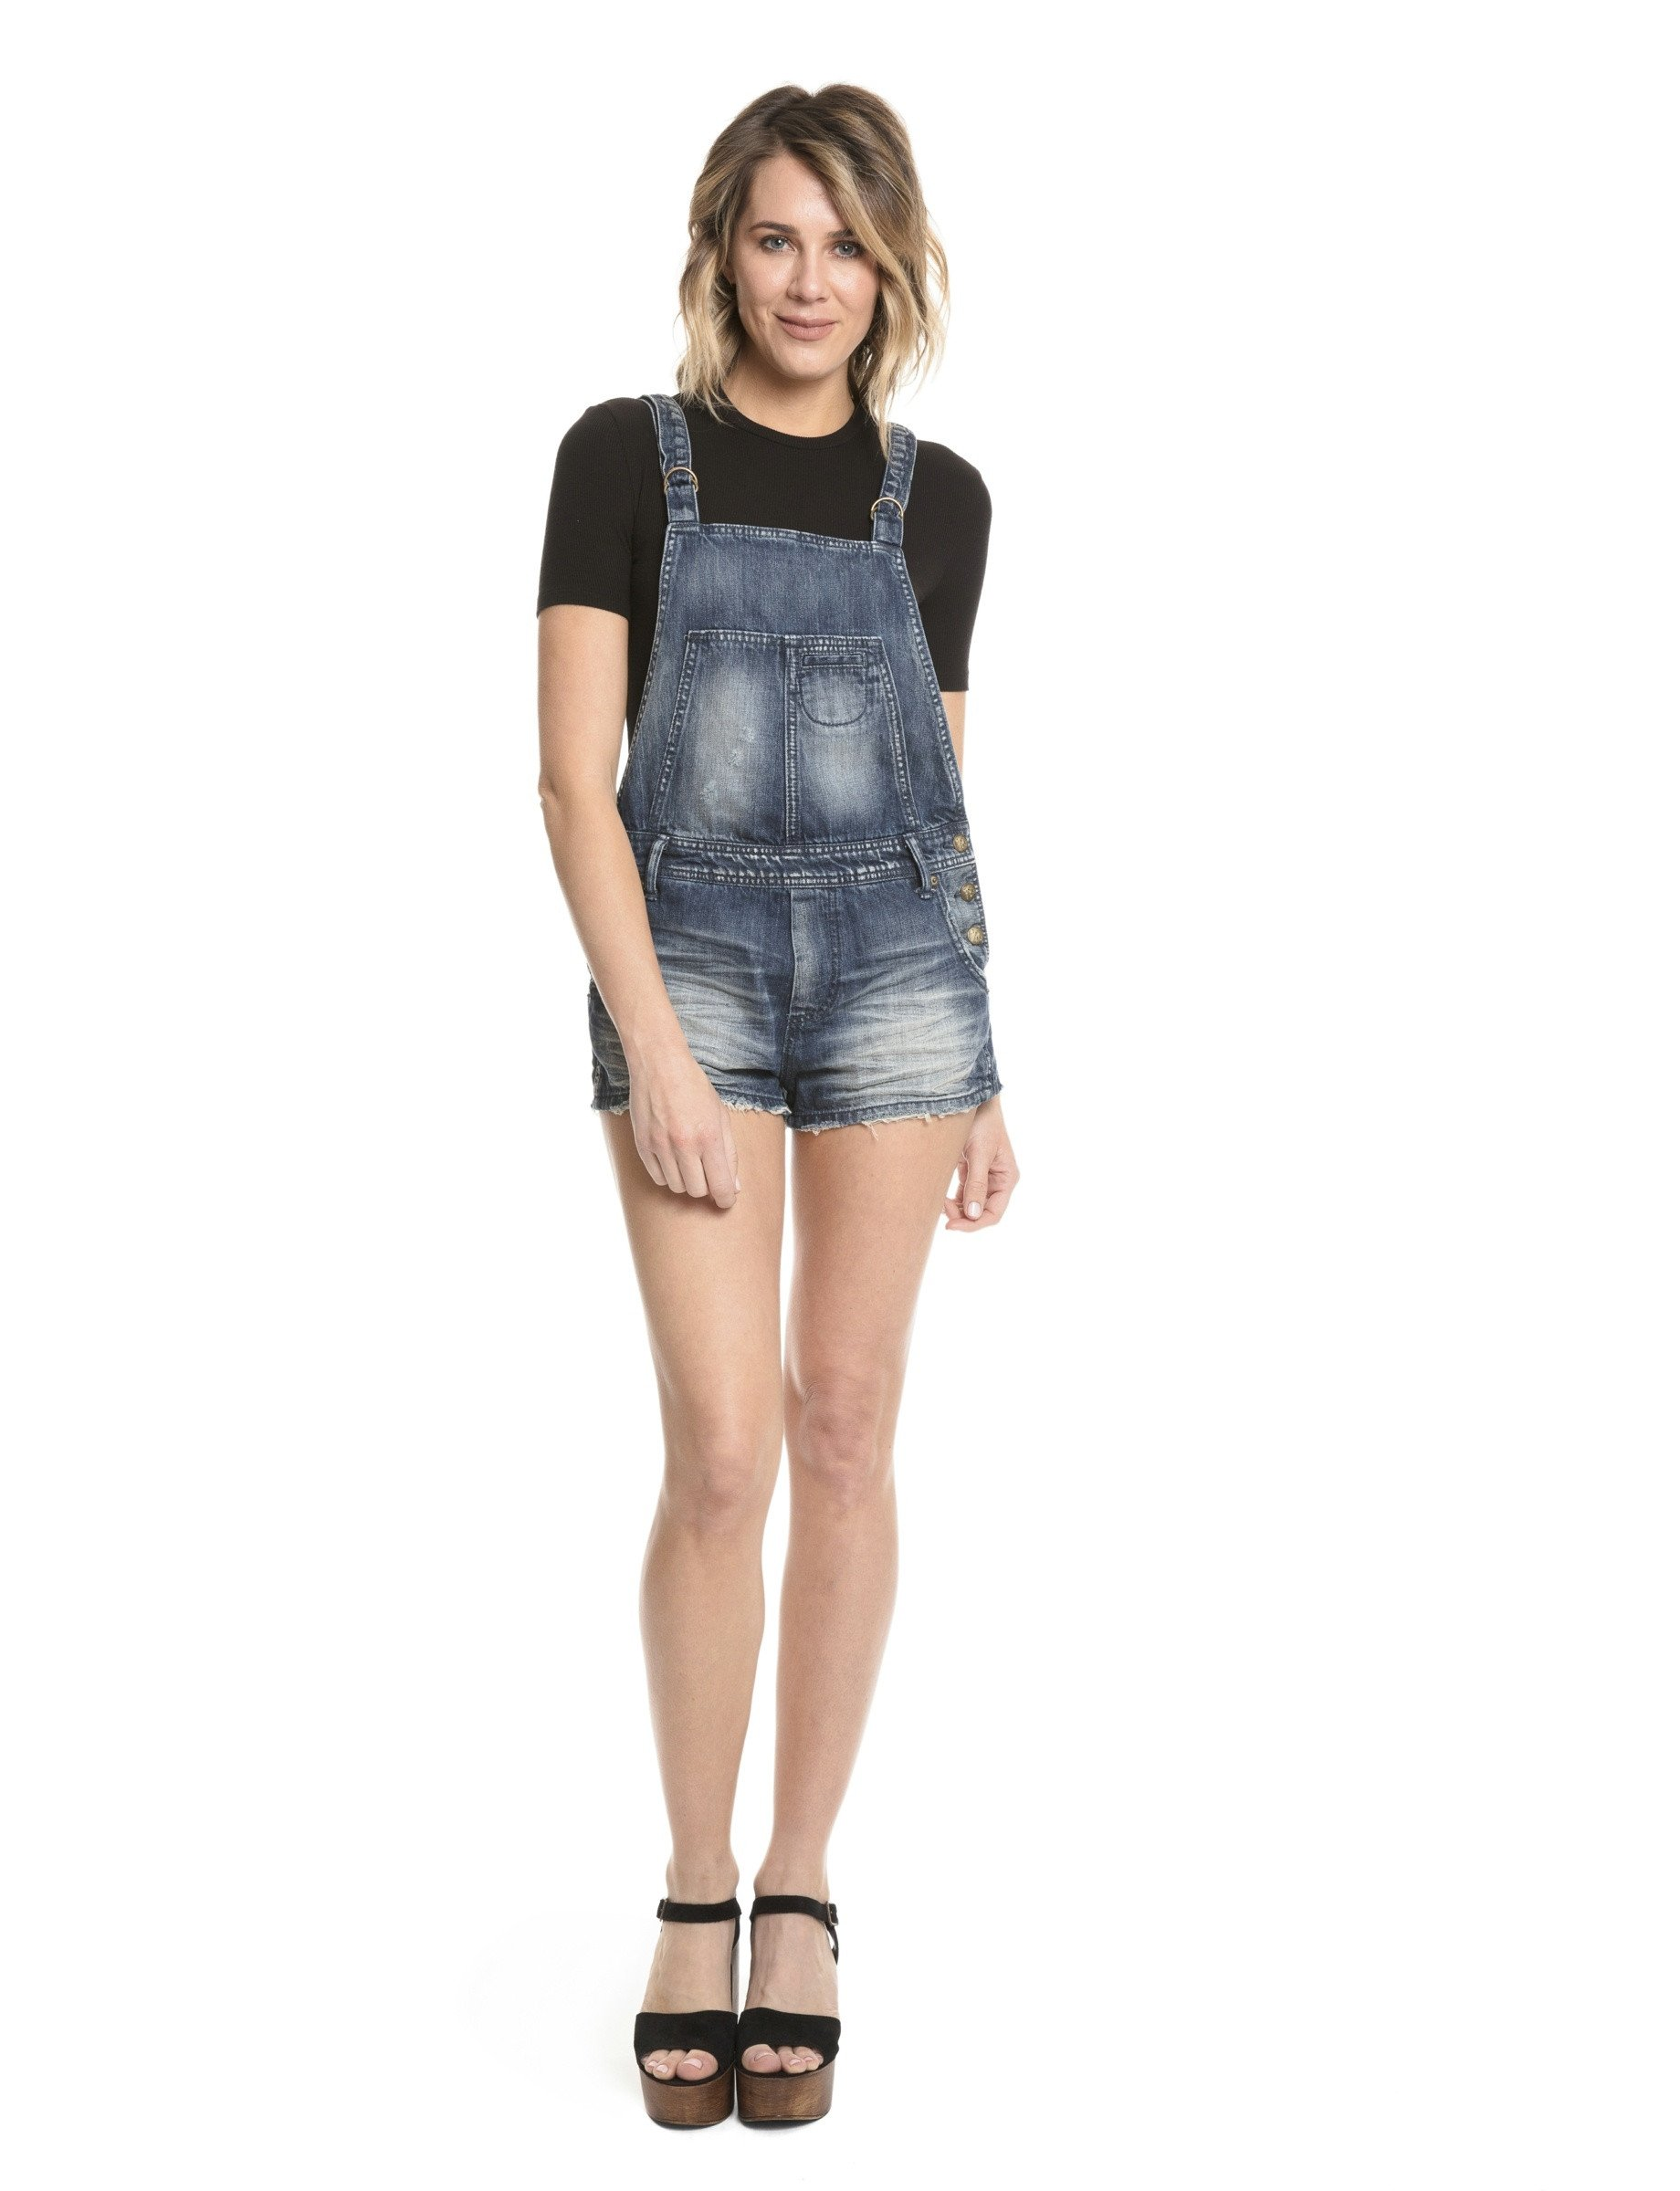 Overall shorts: Today's Trend